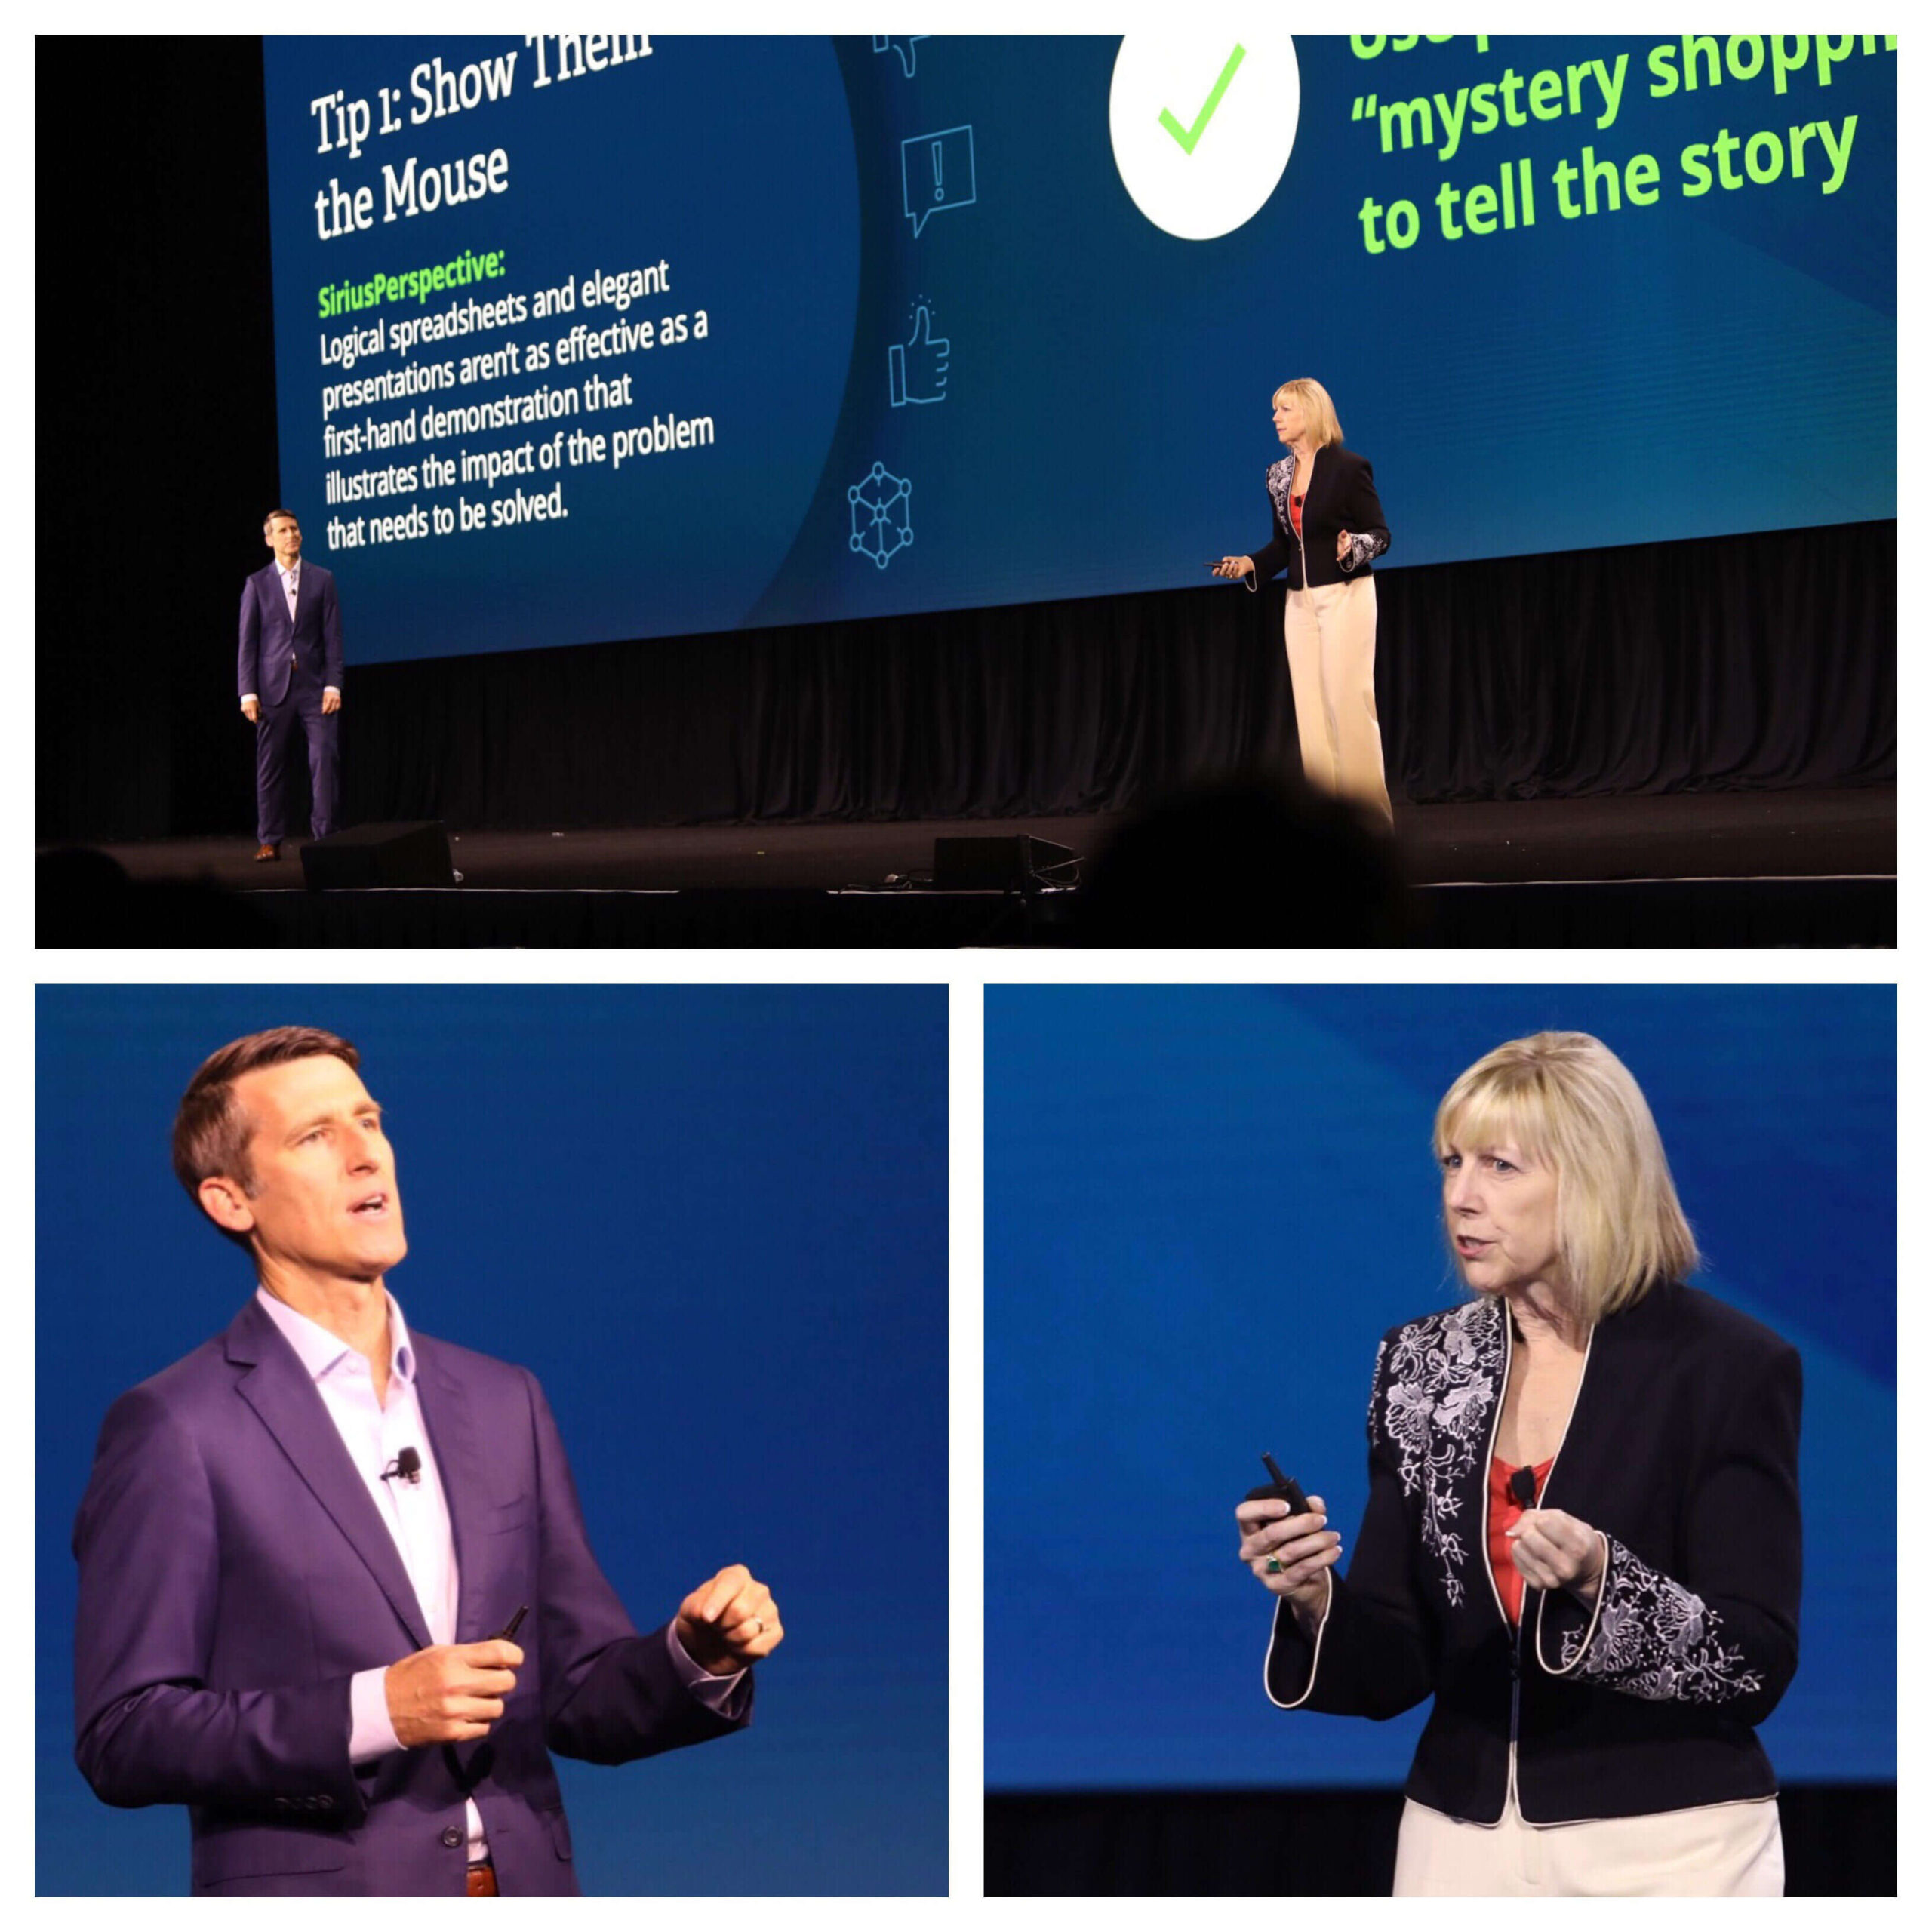 phil harrell and monica behncke on stage at Summit 2019